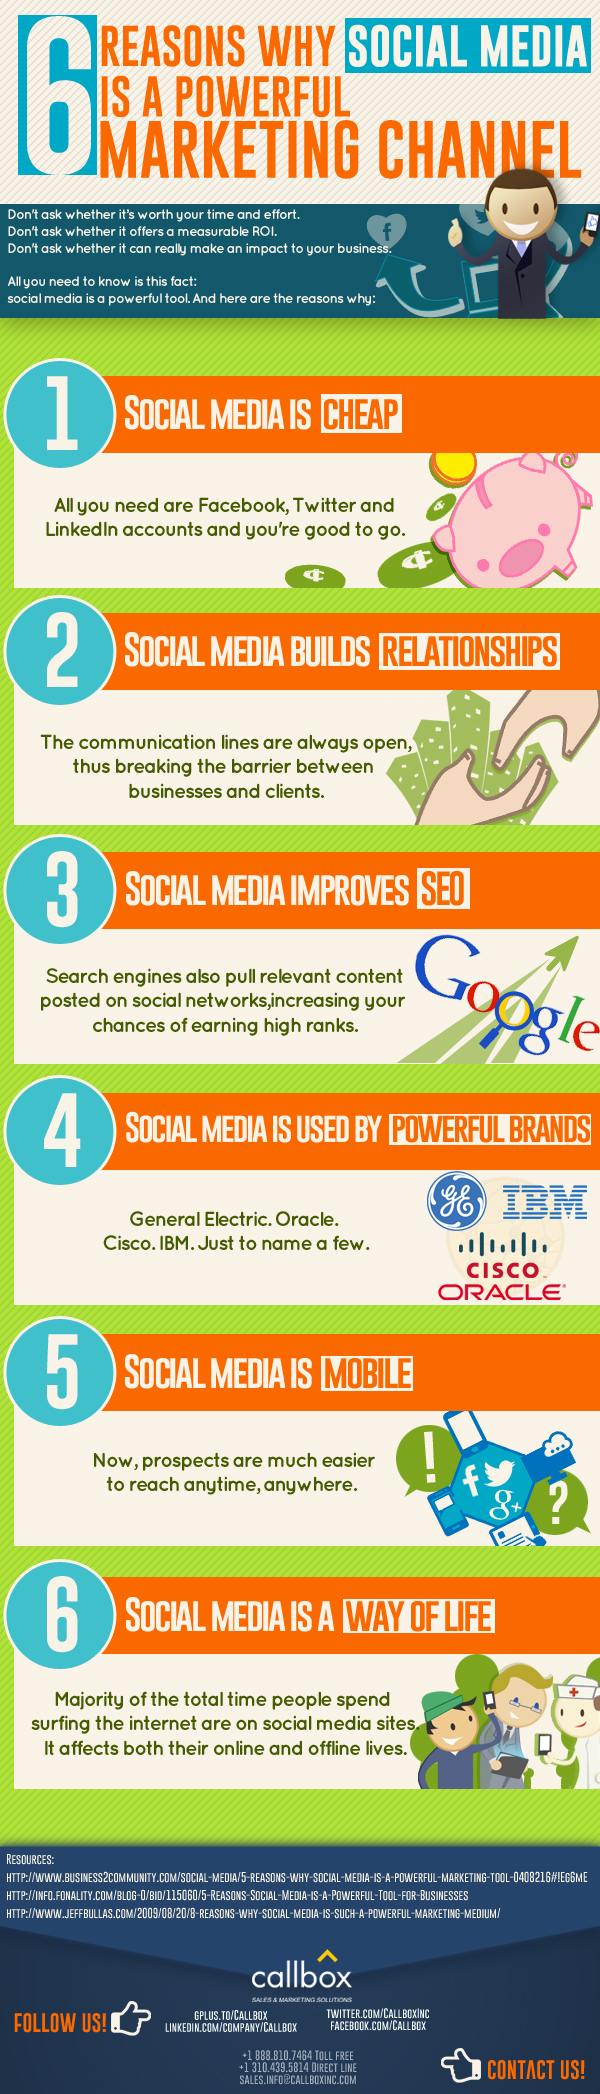 6 Reasons Why Social Media is a Powerful Marketing Channel